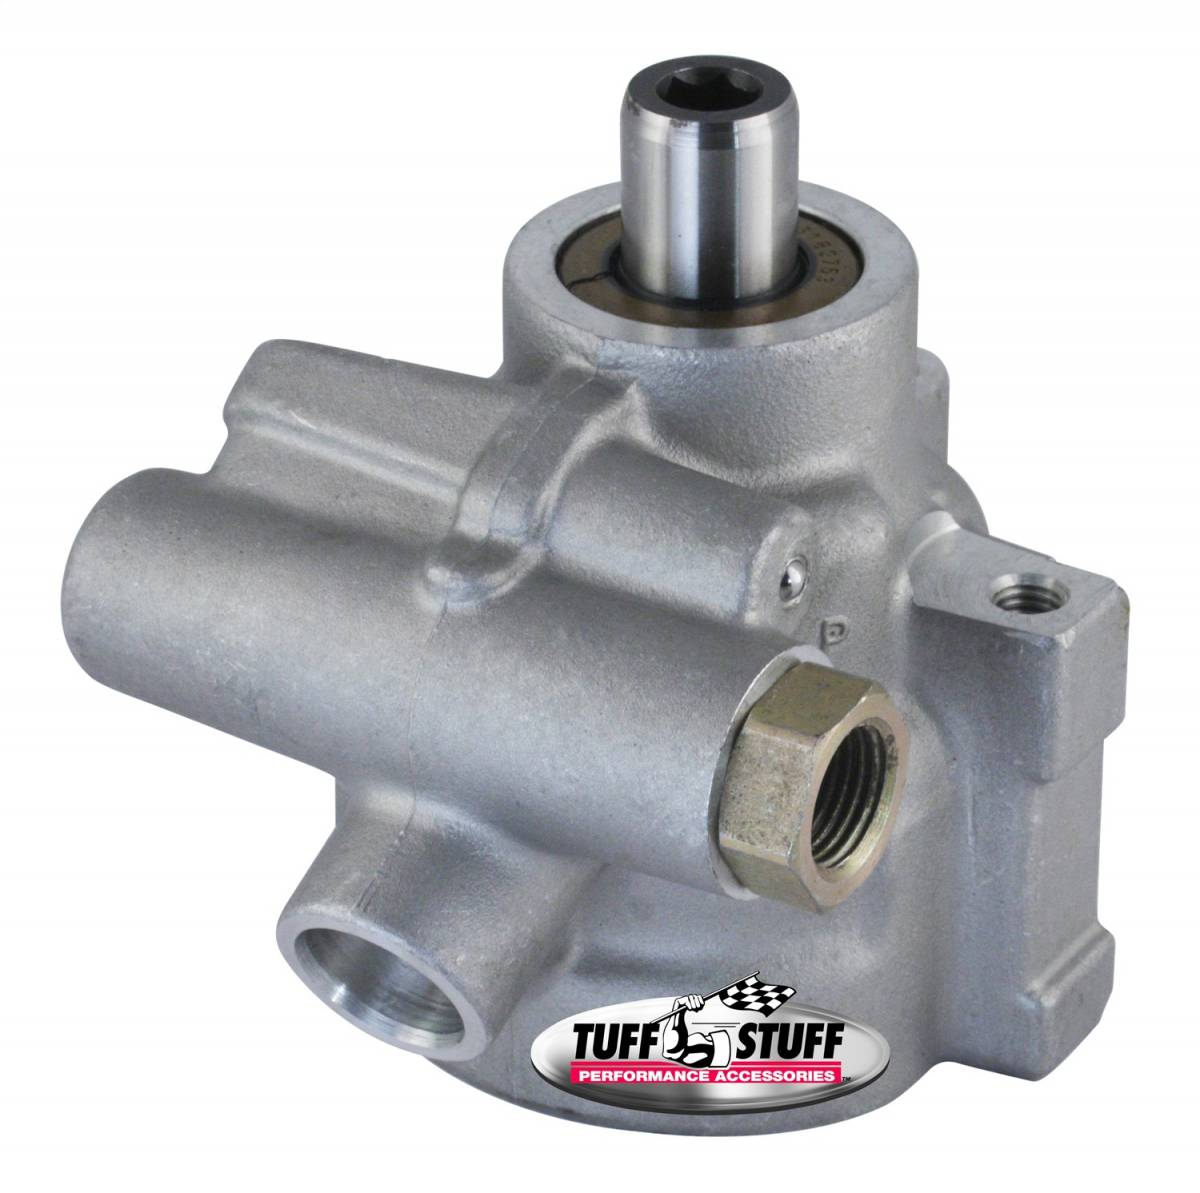 Tuff Stuff Performance - Type II Alum. Power Steering Pump GM LS Stock Replacement For 1998-2002 Camaro And Firebirds Alum For Street Rods/Custom Vehicles w/Limited Engine Space Factory Cast PLUS+ 6175AL-6